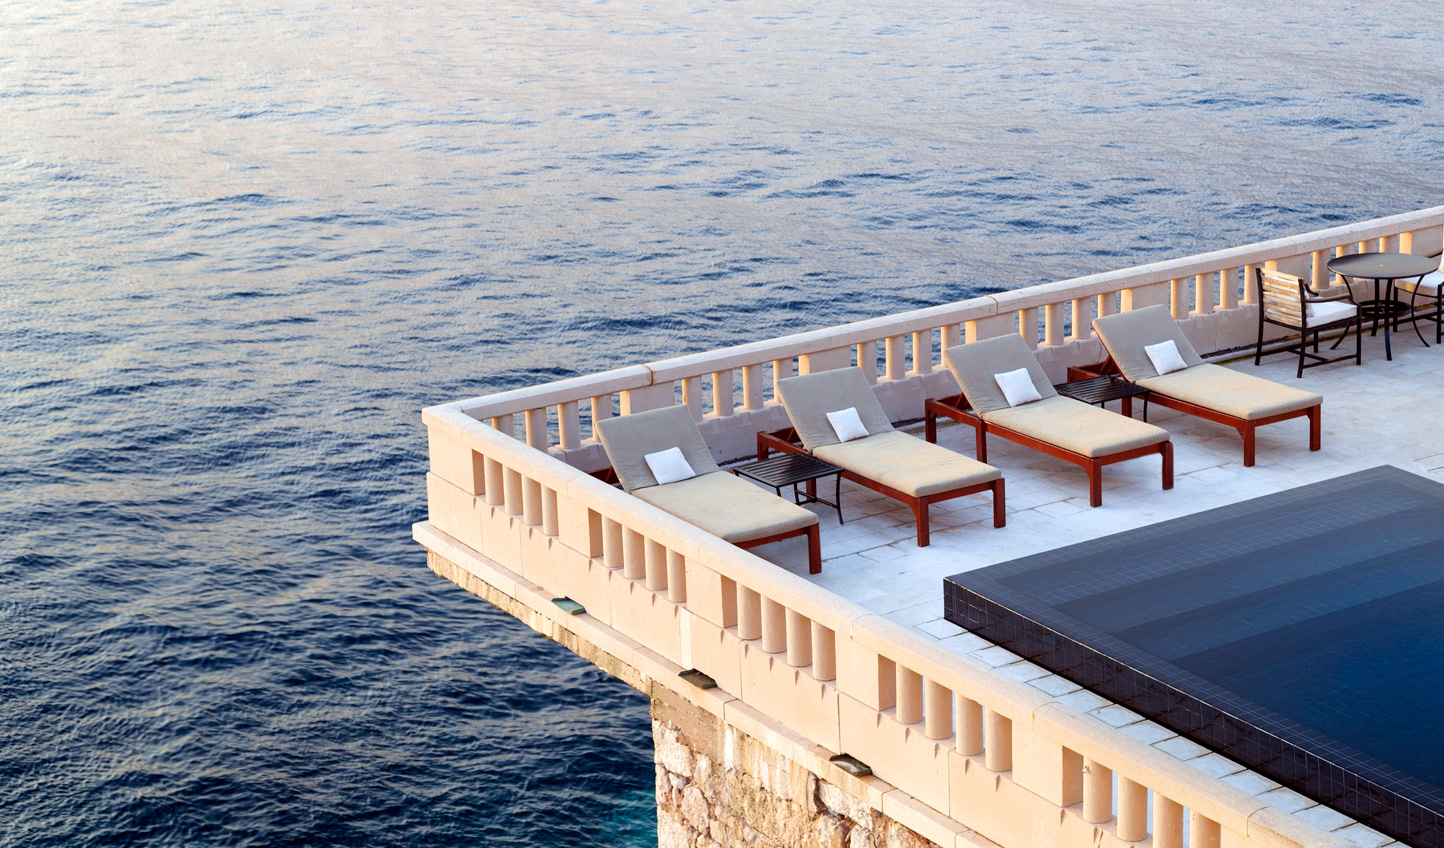 Relax by the pool and admire the views out to sea